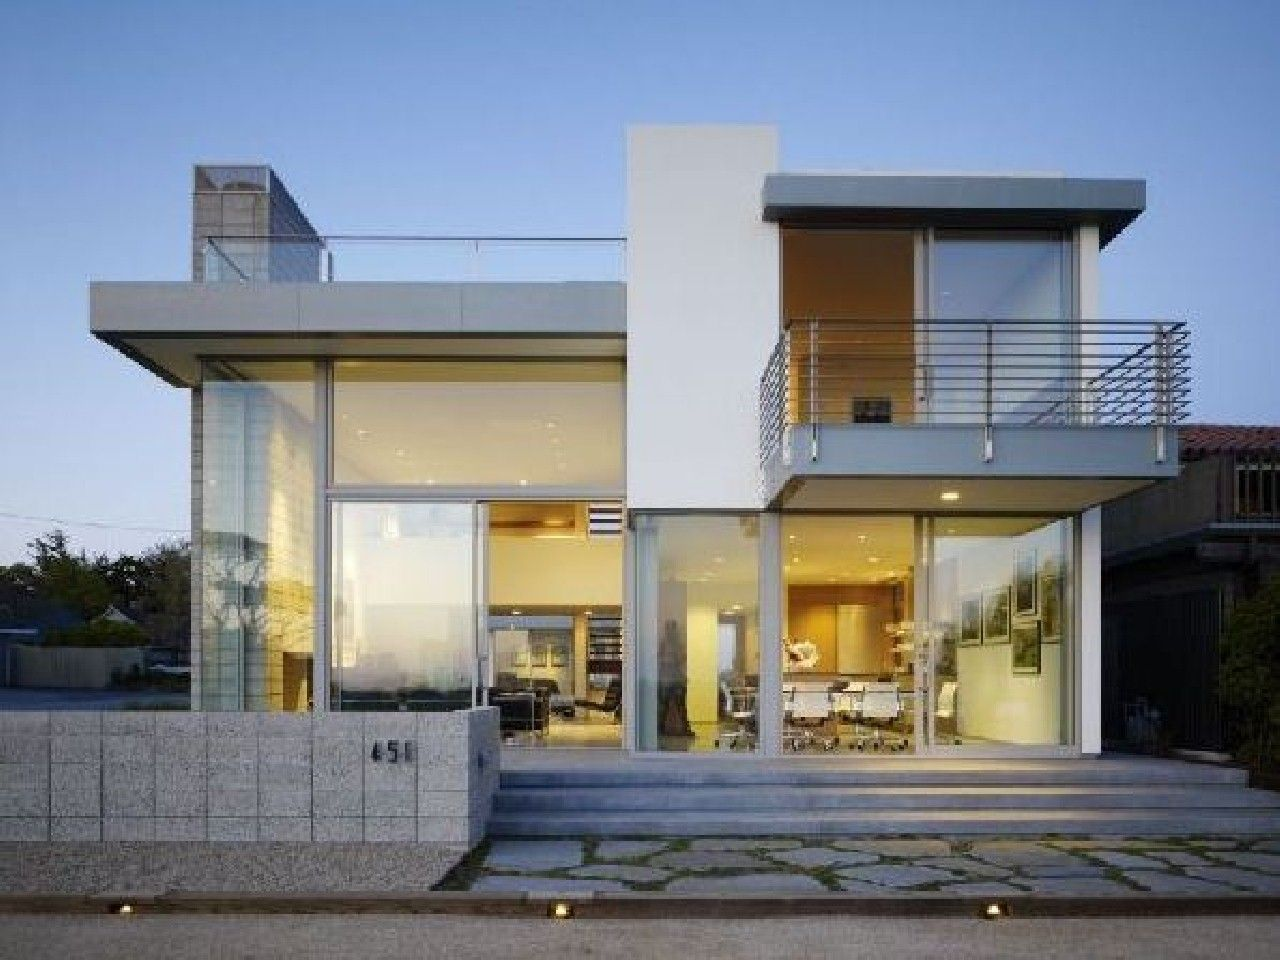 Minimalist House Designs modern minimalist house designs and architectures - home design